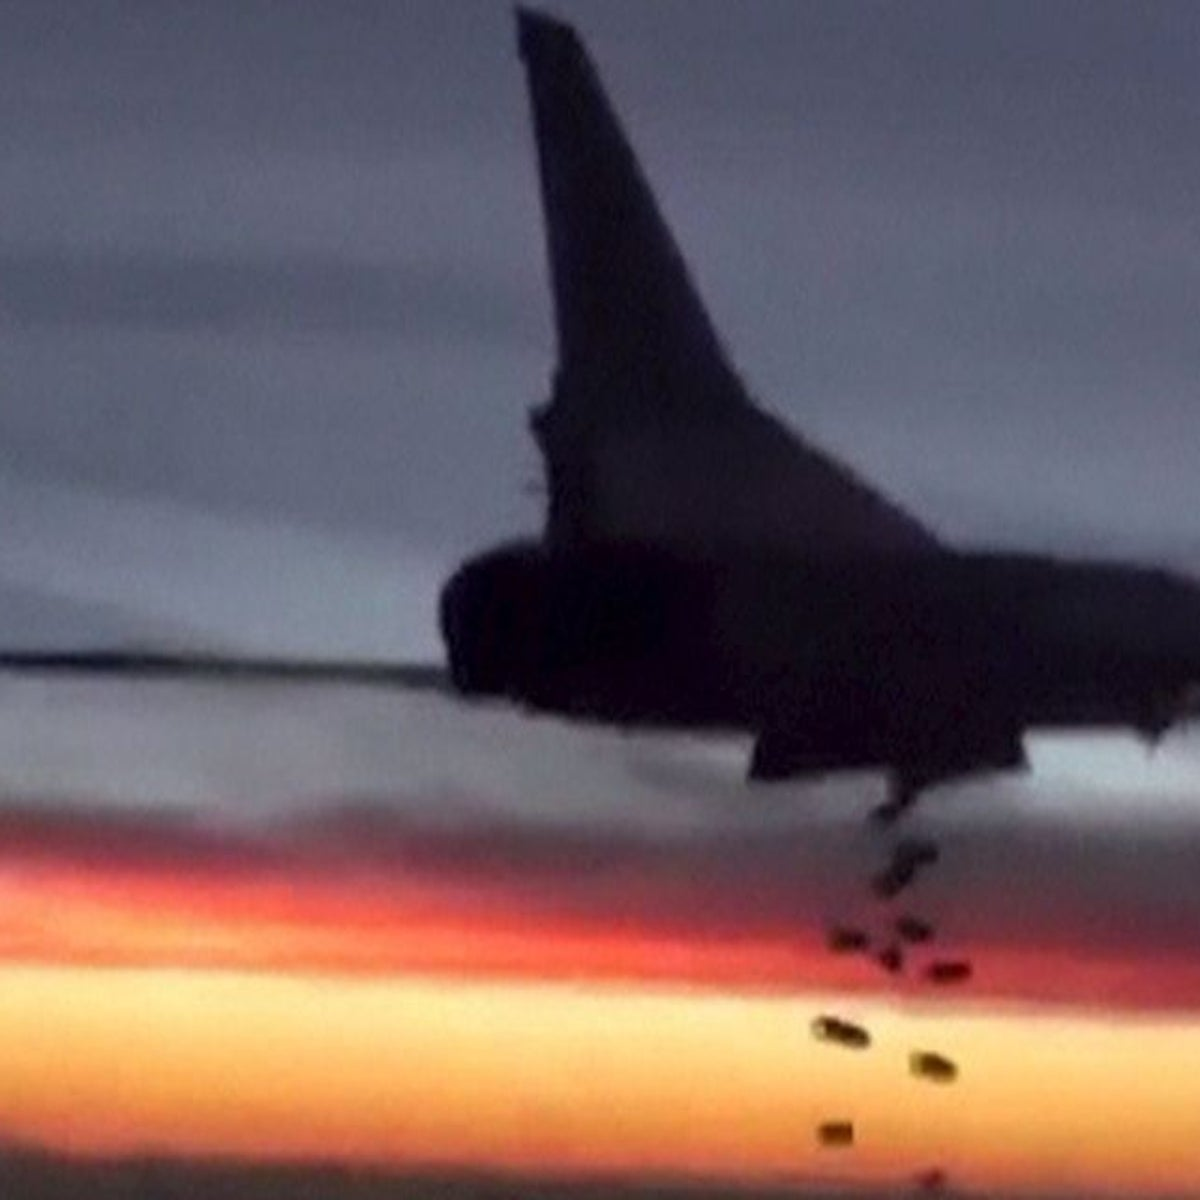 In this photo released by the Russian Defense Ministry, a Tupolev TU-22 bomber conducts an airstrike in Syria, November 19, 2015.